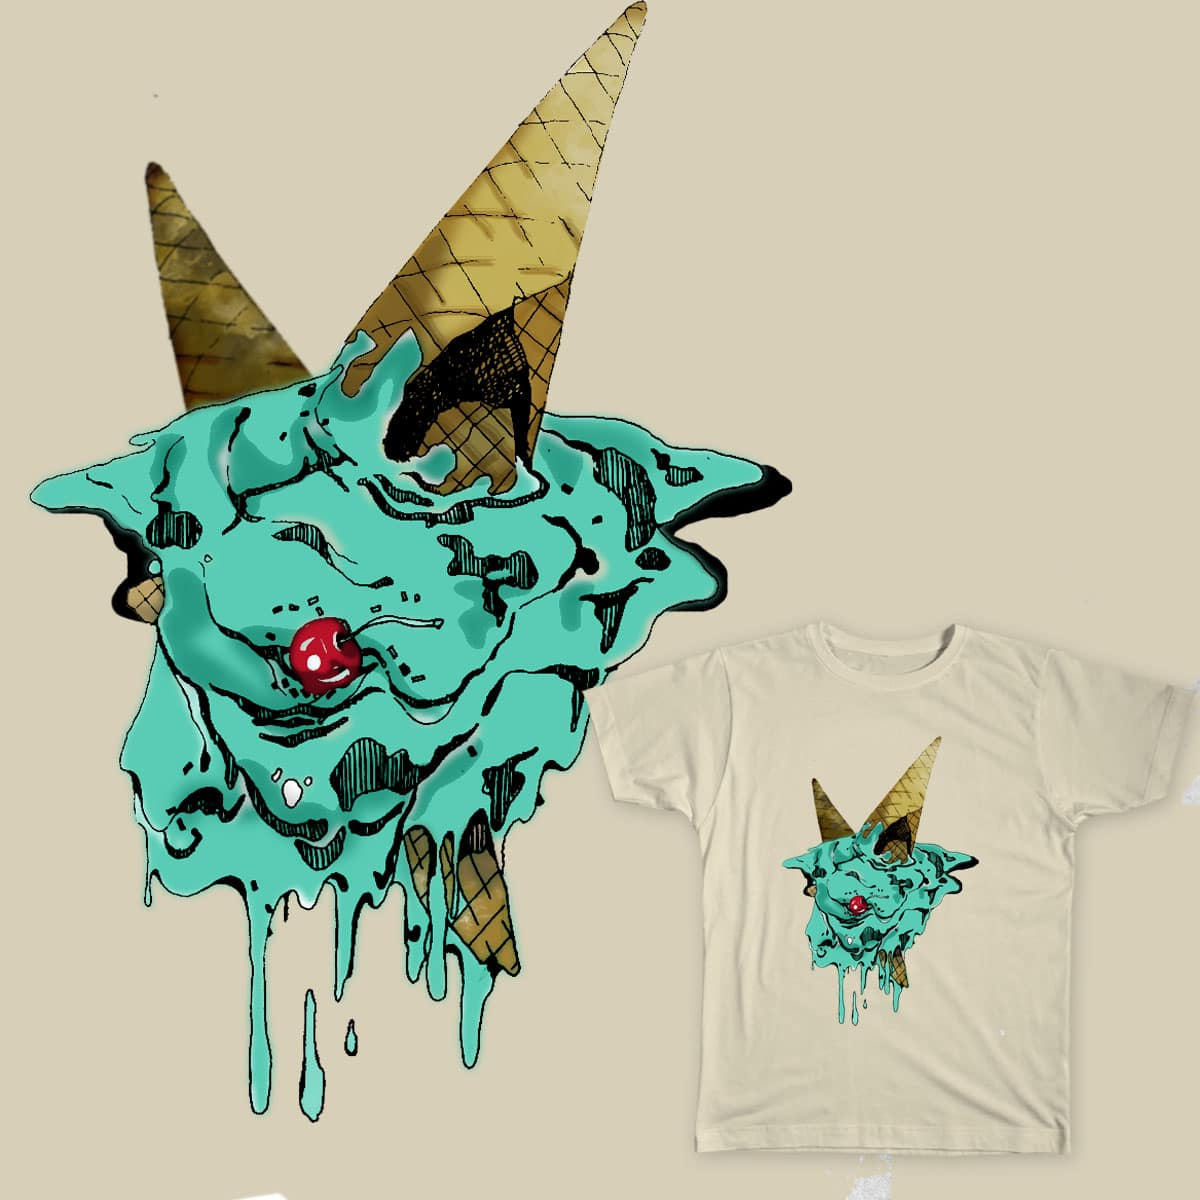 sweet or sin by decun.devin on Threadless